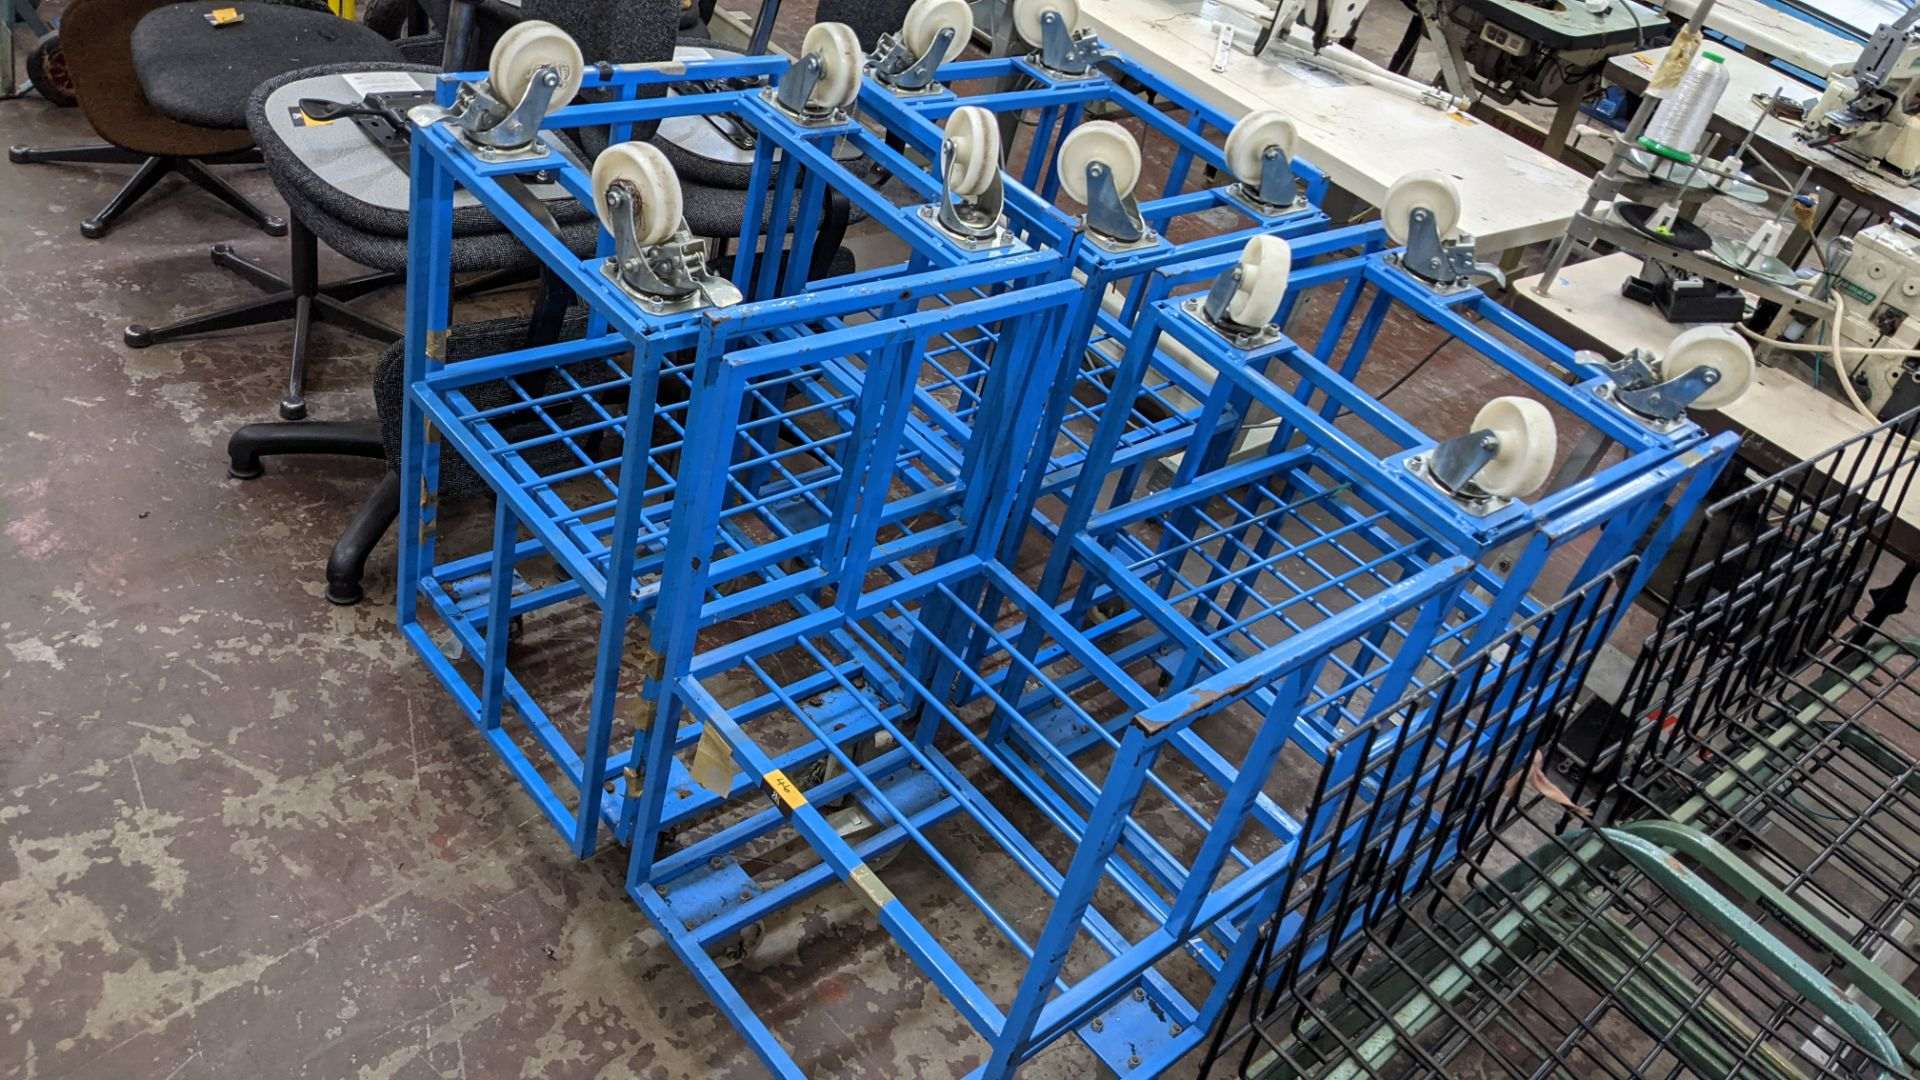 7 off blue mobile trollies - Image 6 of 6